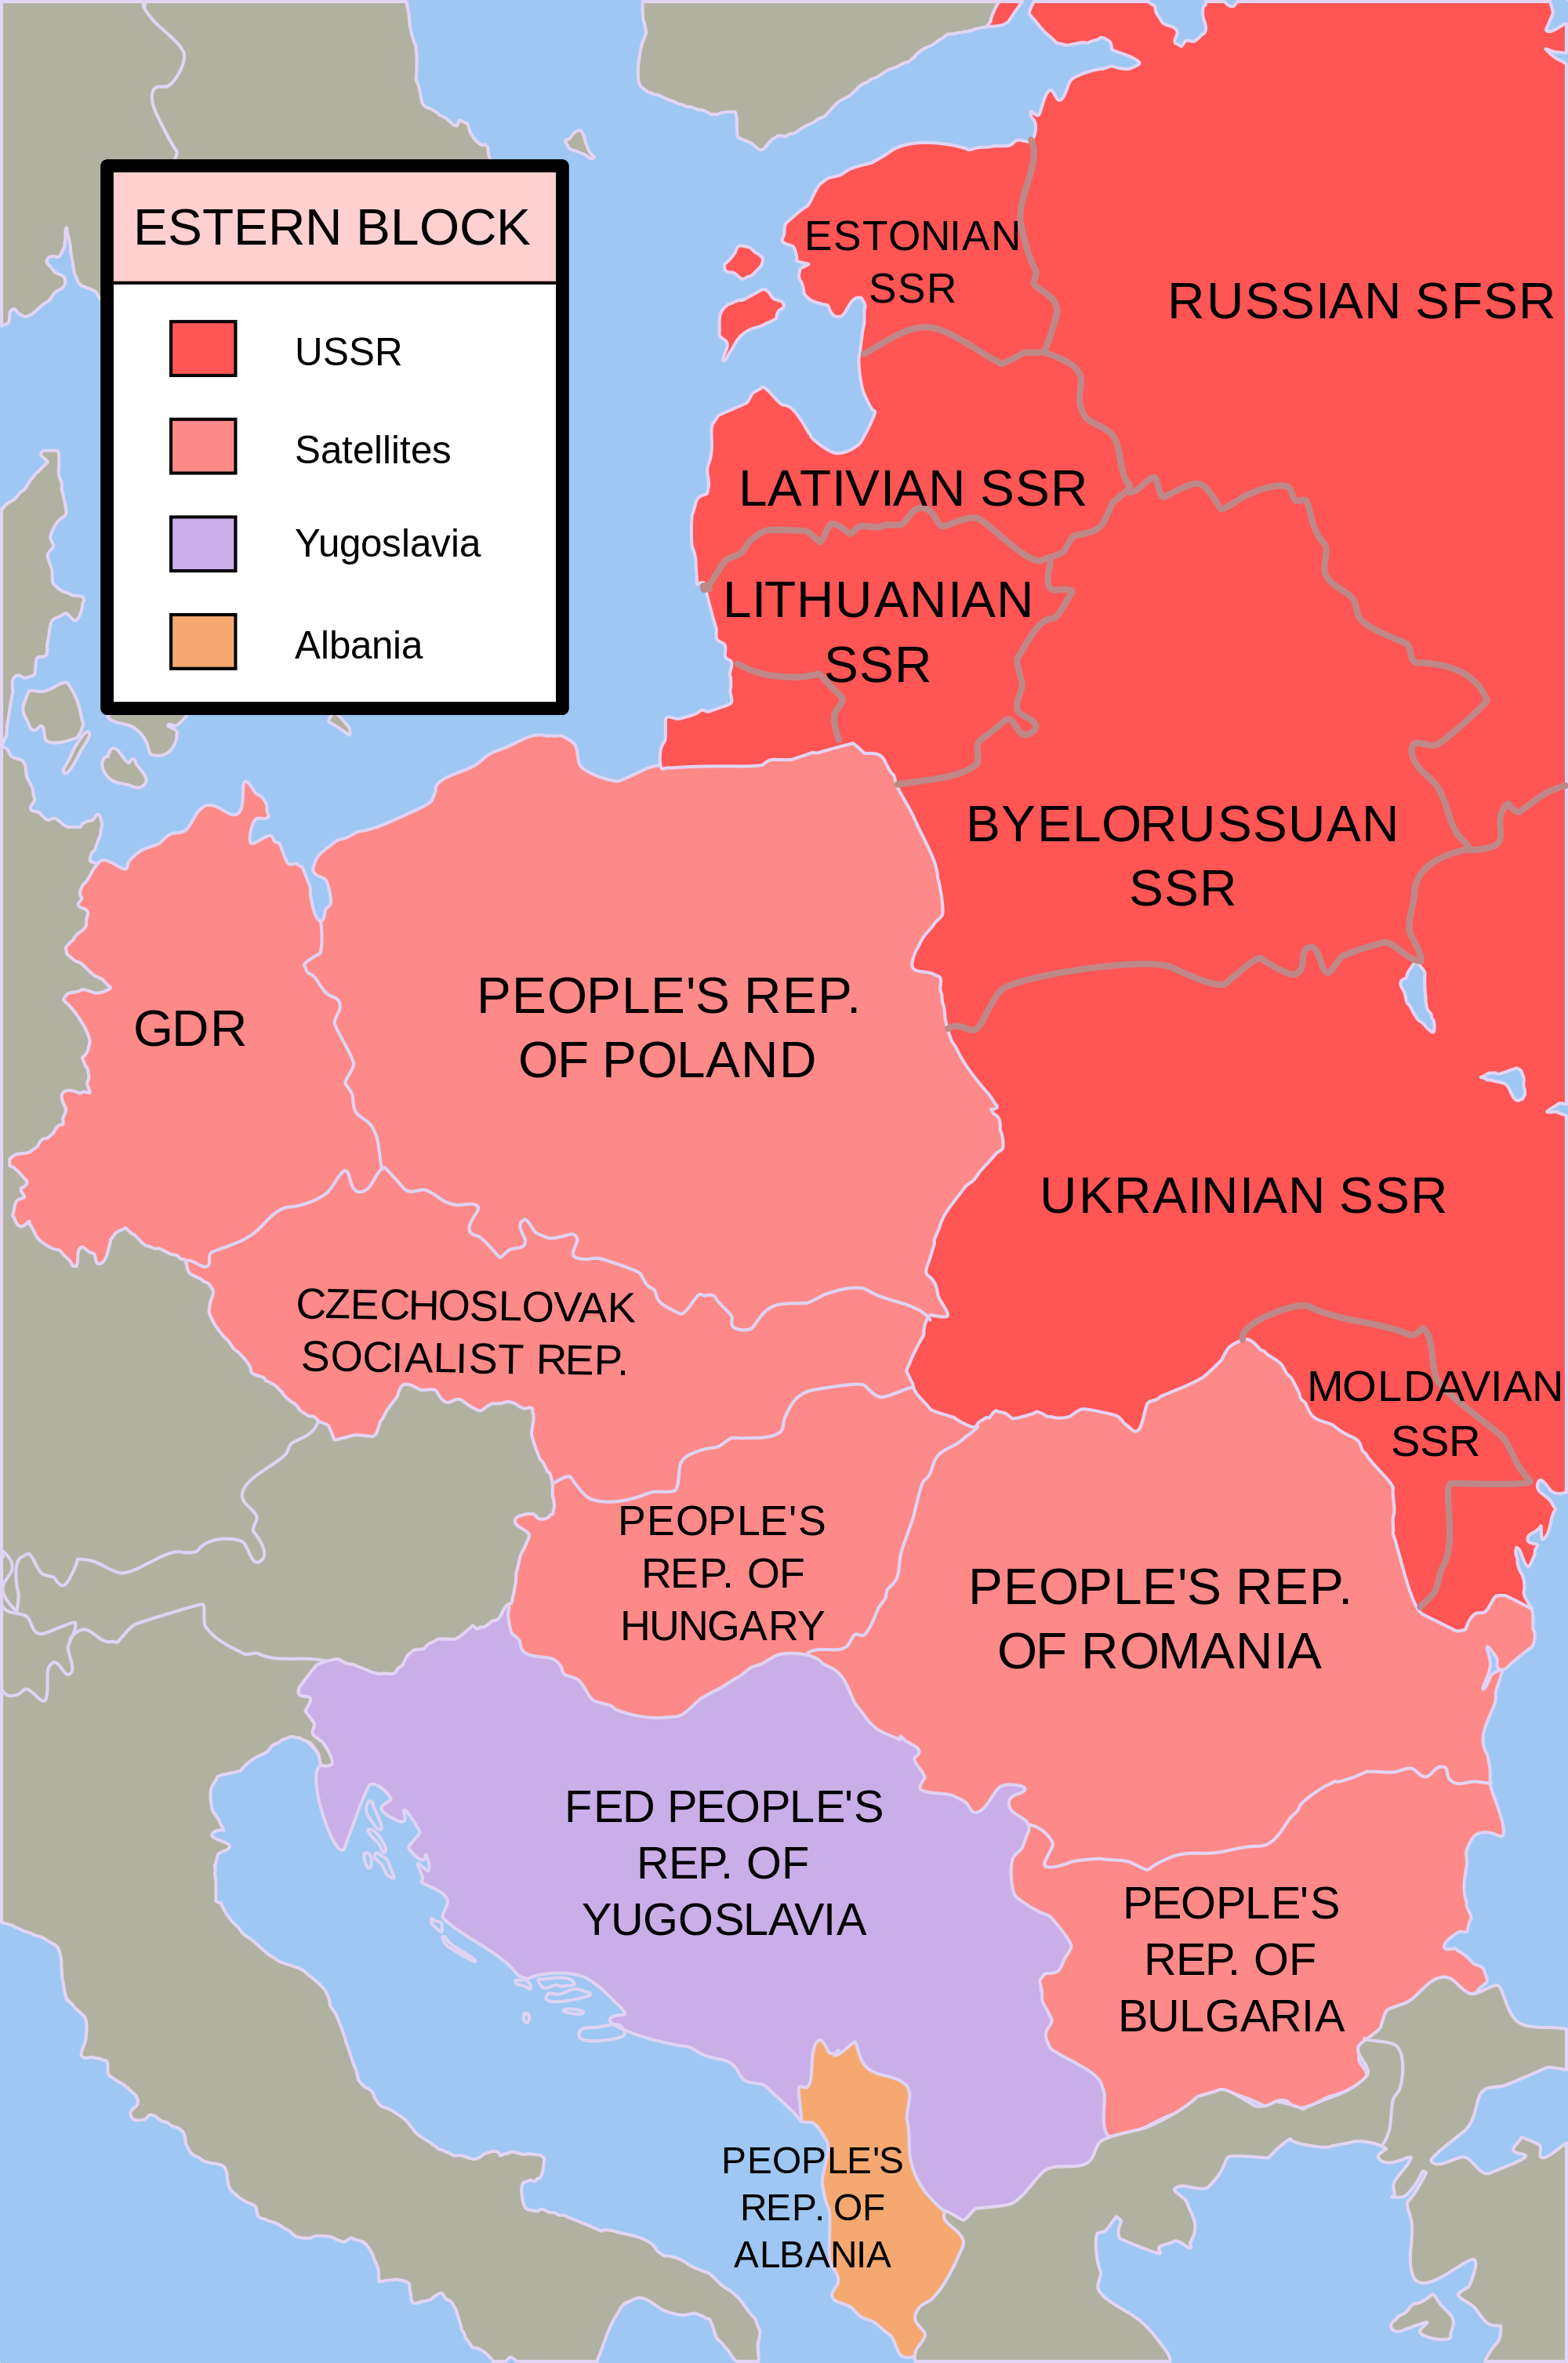 By contrast, Romania had a buffer of communist countries around it ...